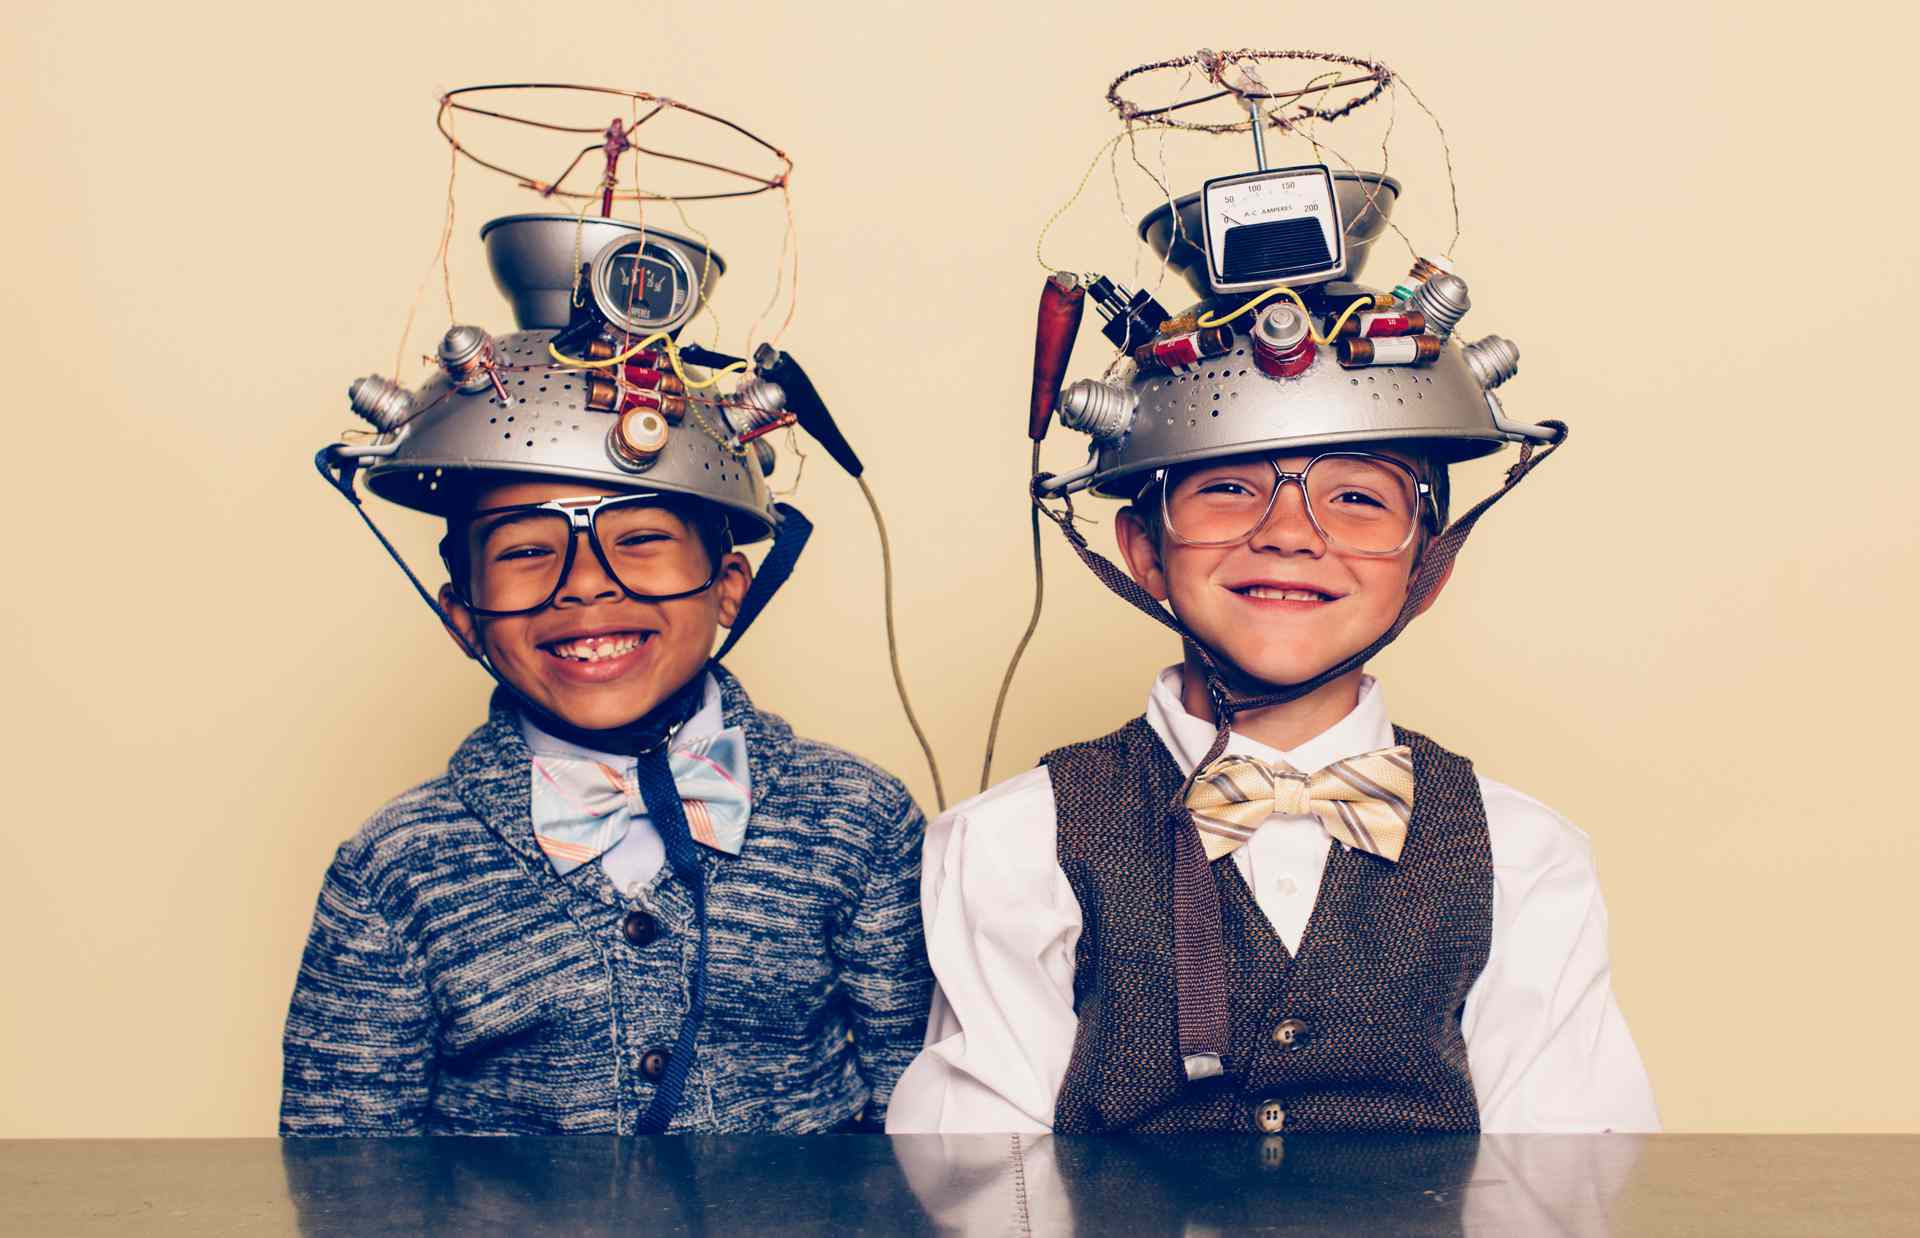 Two boys with time travel head gear toys.